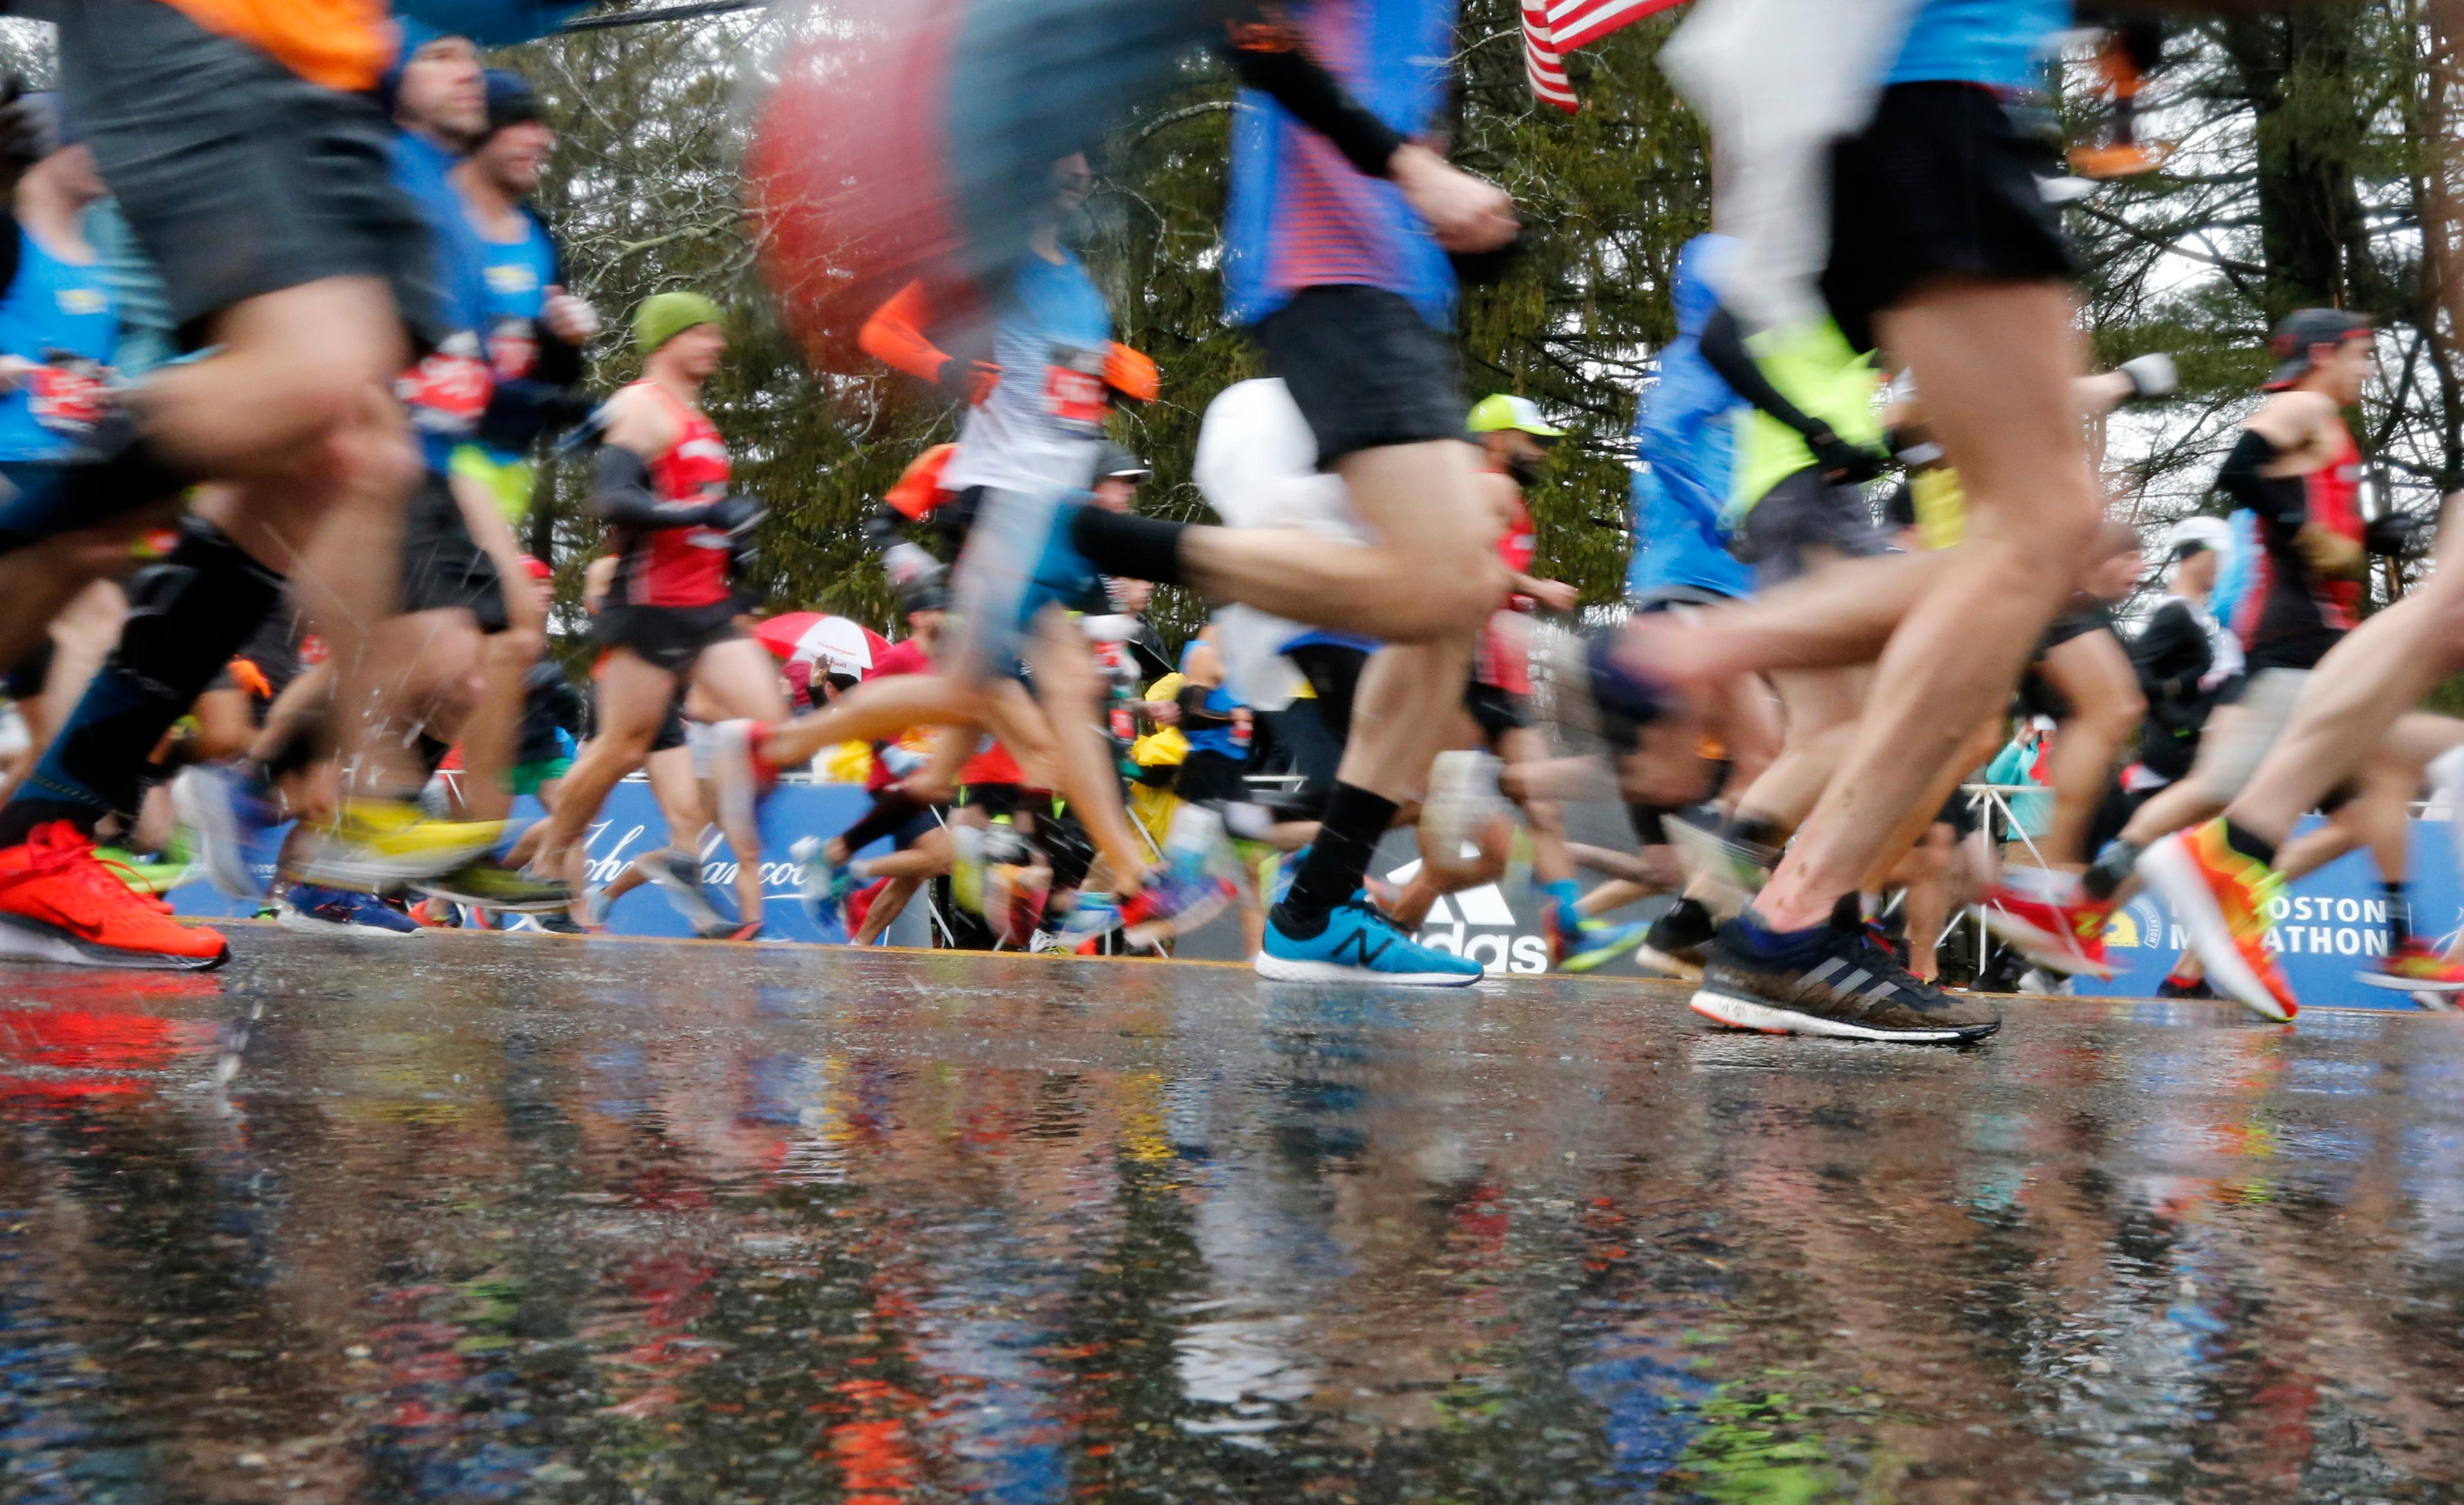 Runners in the first wave break from the start on rain soaked streets during the 122nd running of the Boston Marathon in Hopkinton, Mass., Monday, April 16, 2018. (AP Photo/Mary Schwalm)